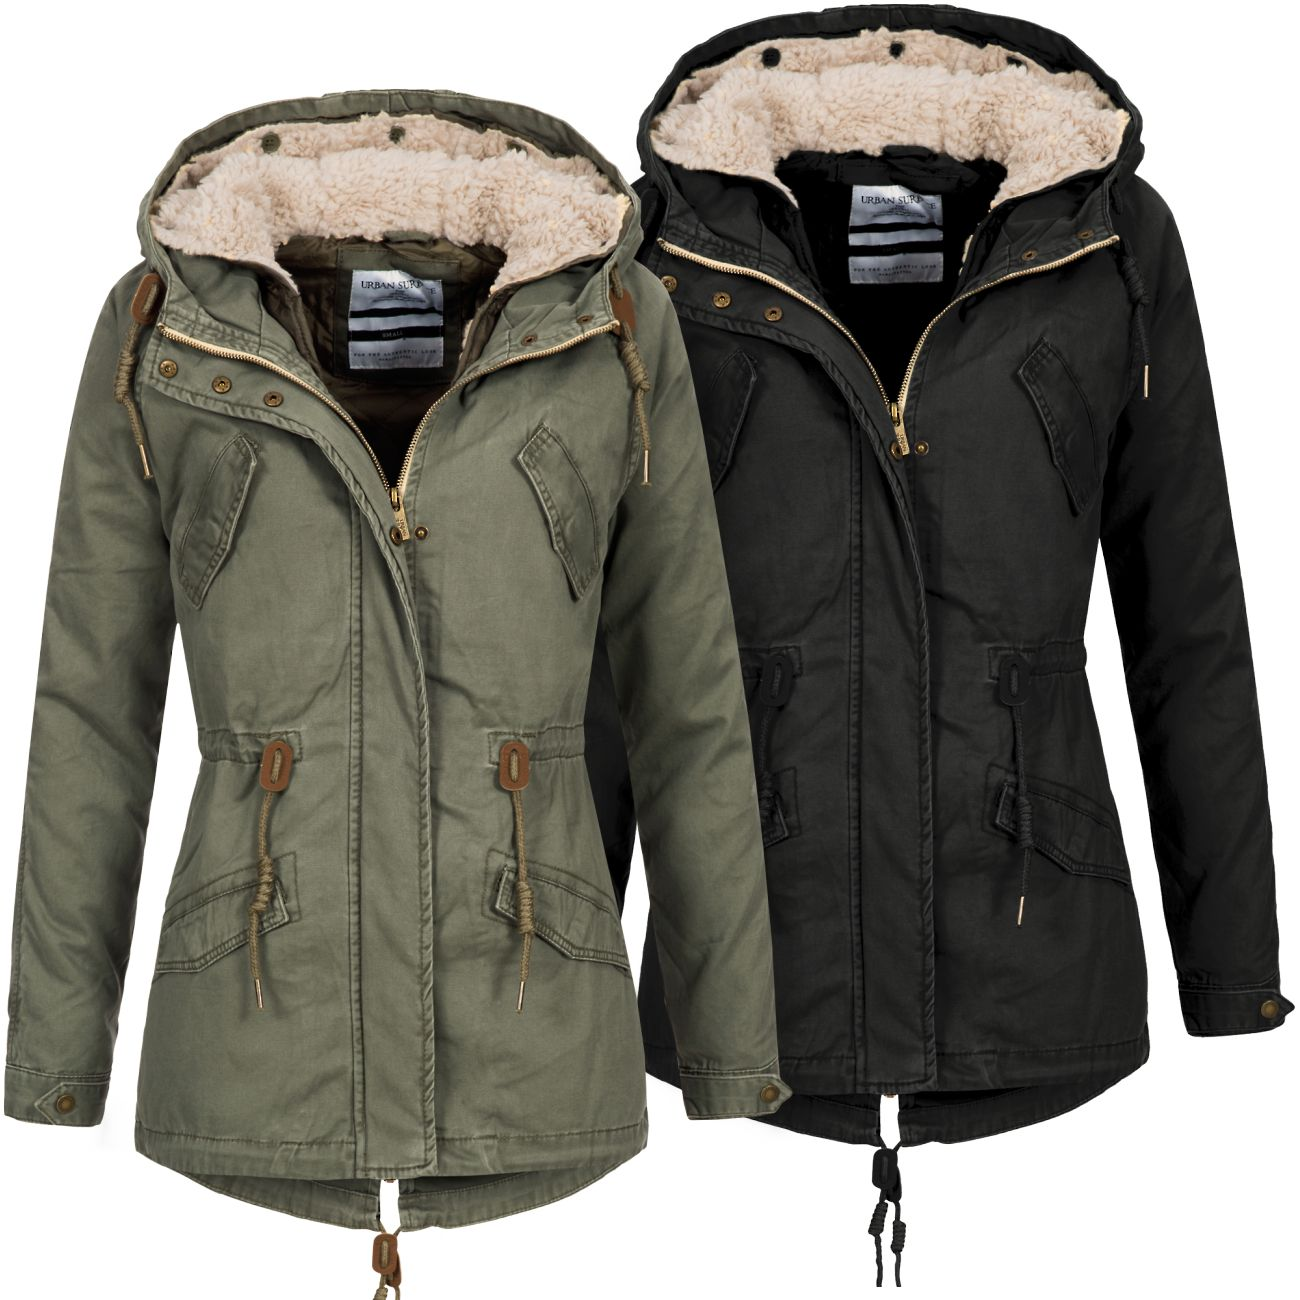 urban surface damen 2 in 1 jacke lus 090 damenjacke herbst winter parka mantel ebay. Black Bedroom Furniture Sets. Home Design Ideas